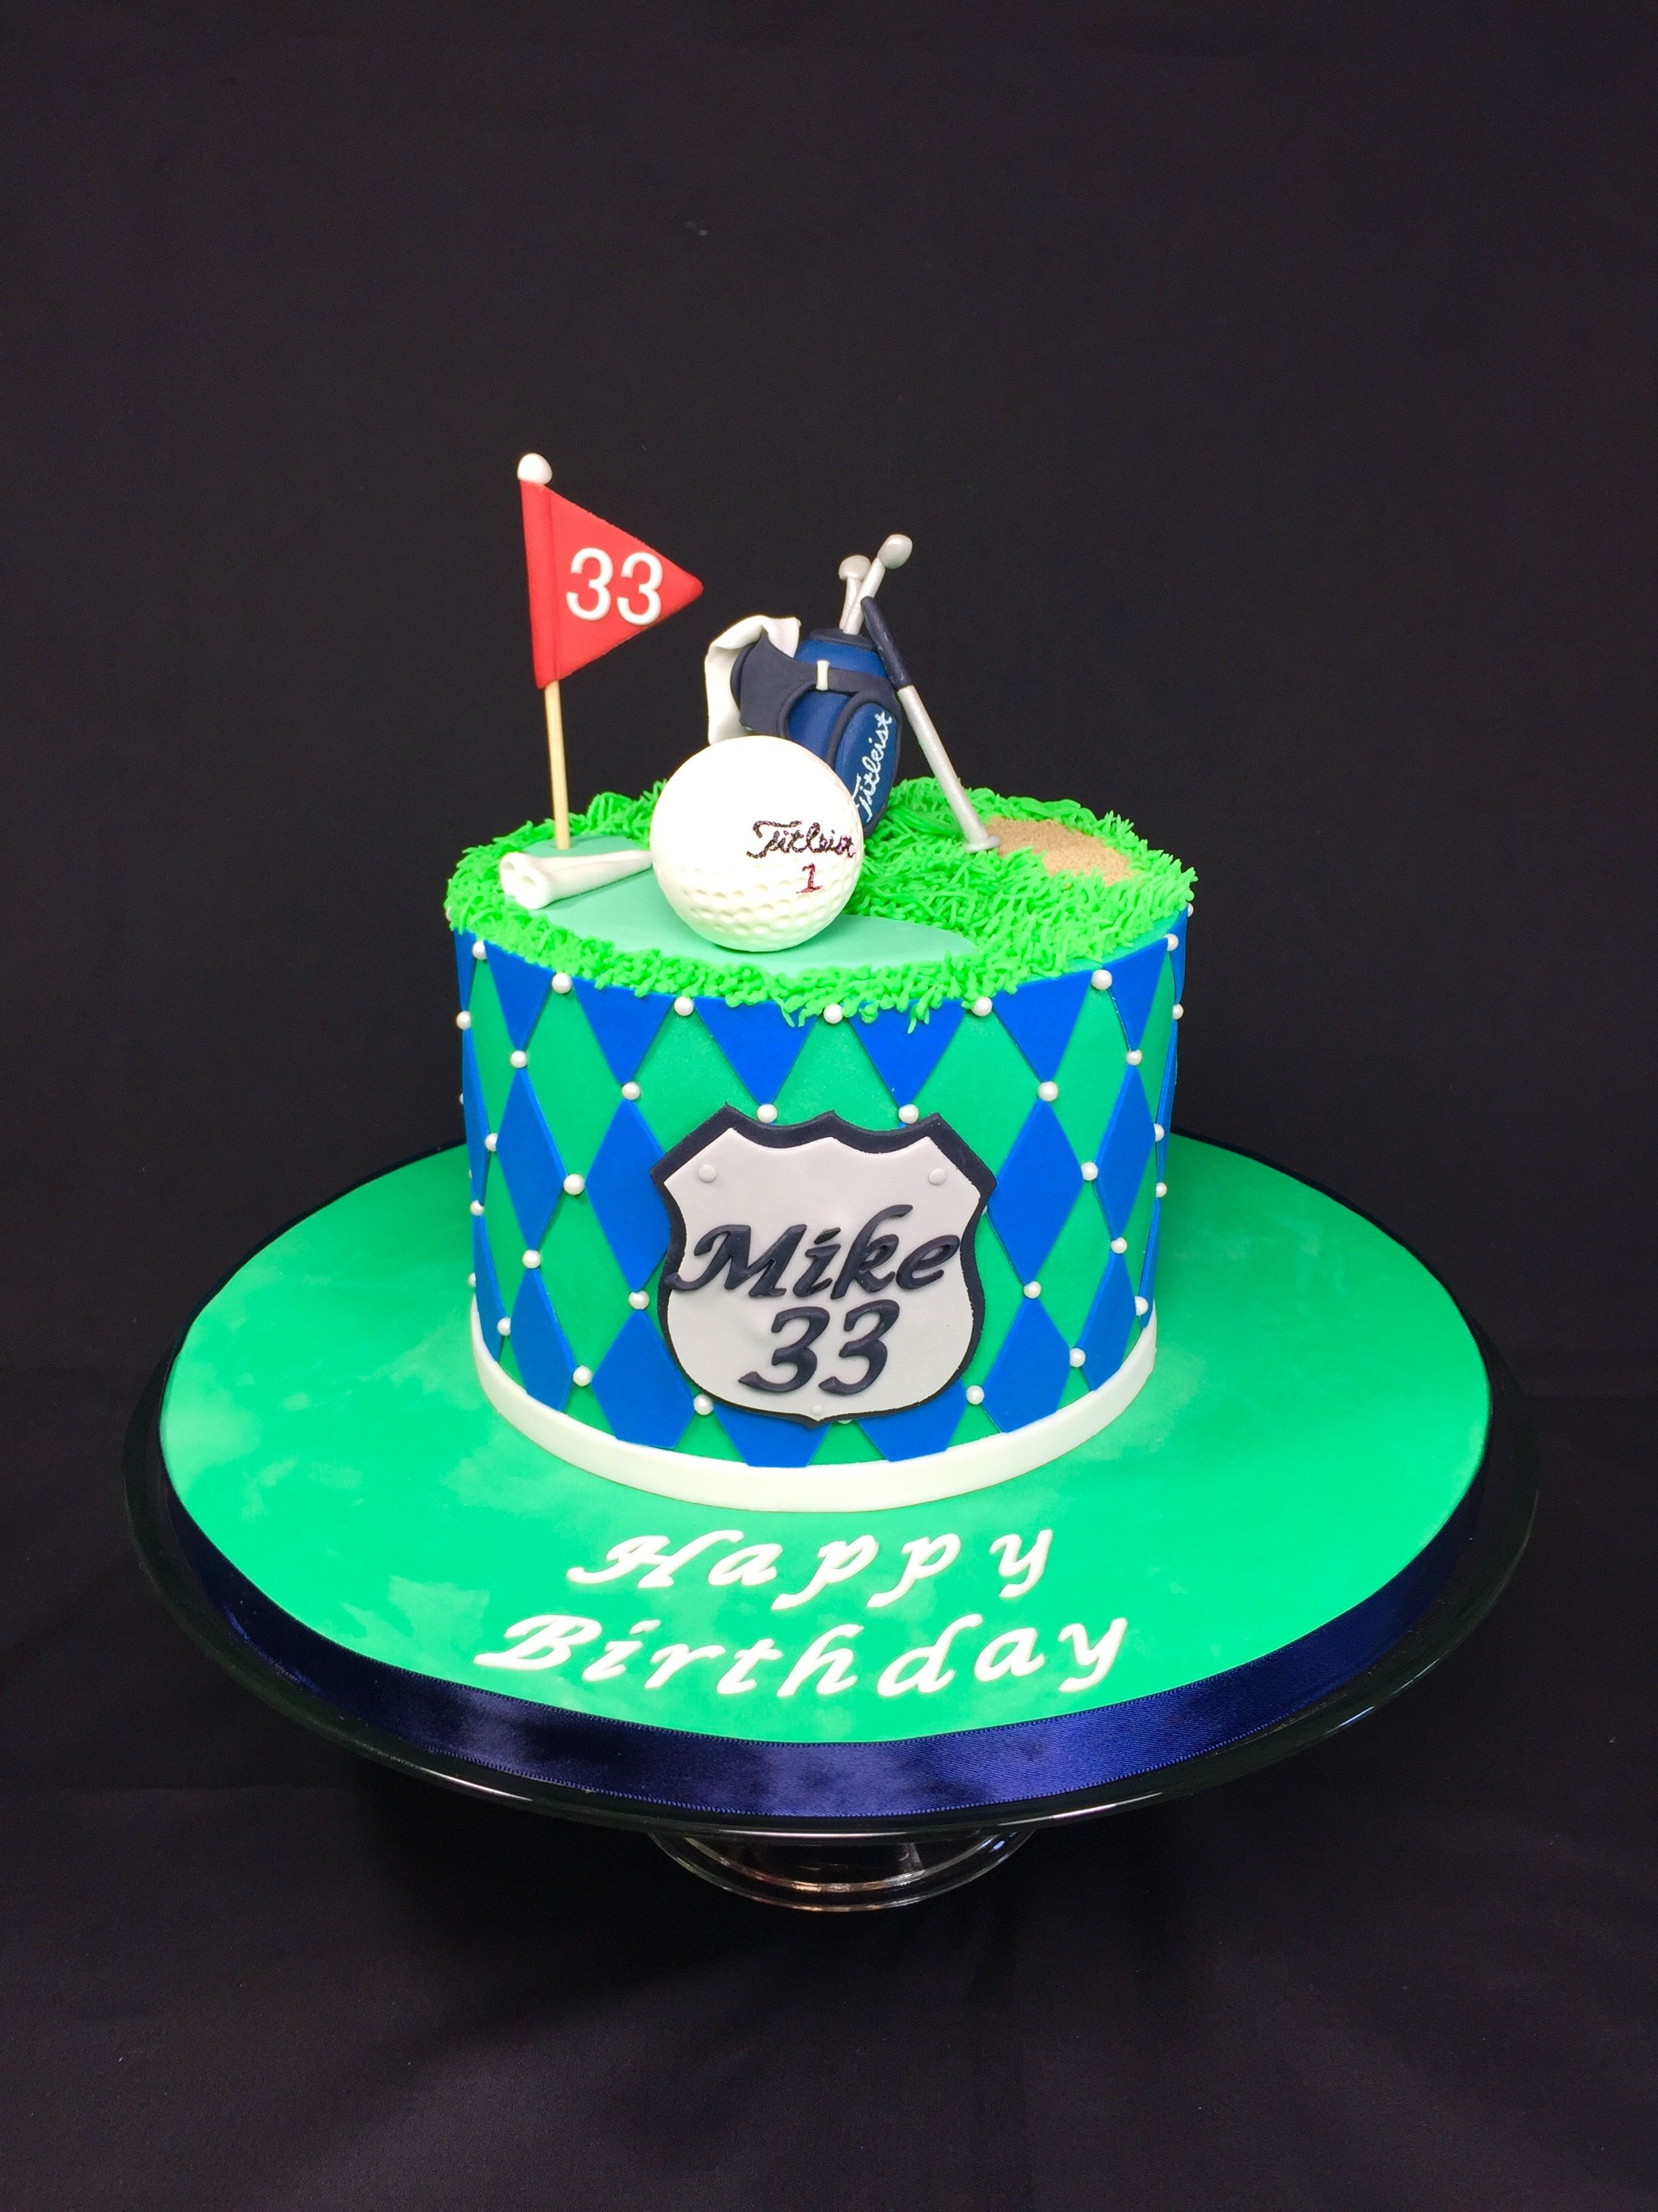 A golf themed birthday cake designed by Layer After Layer cake